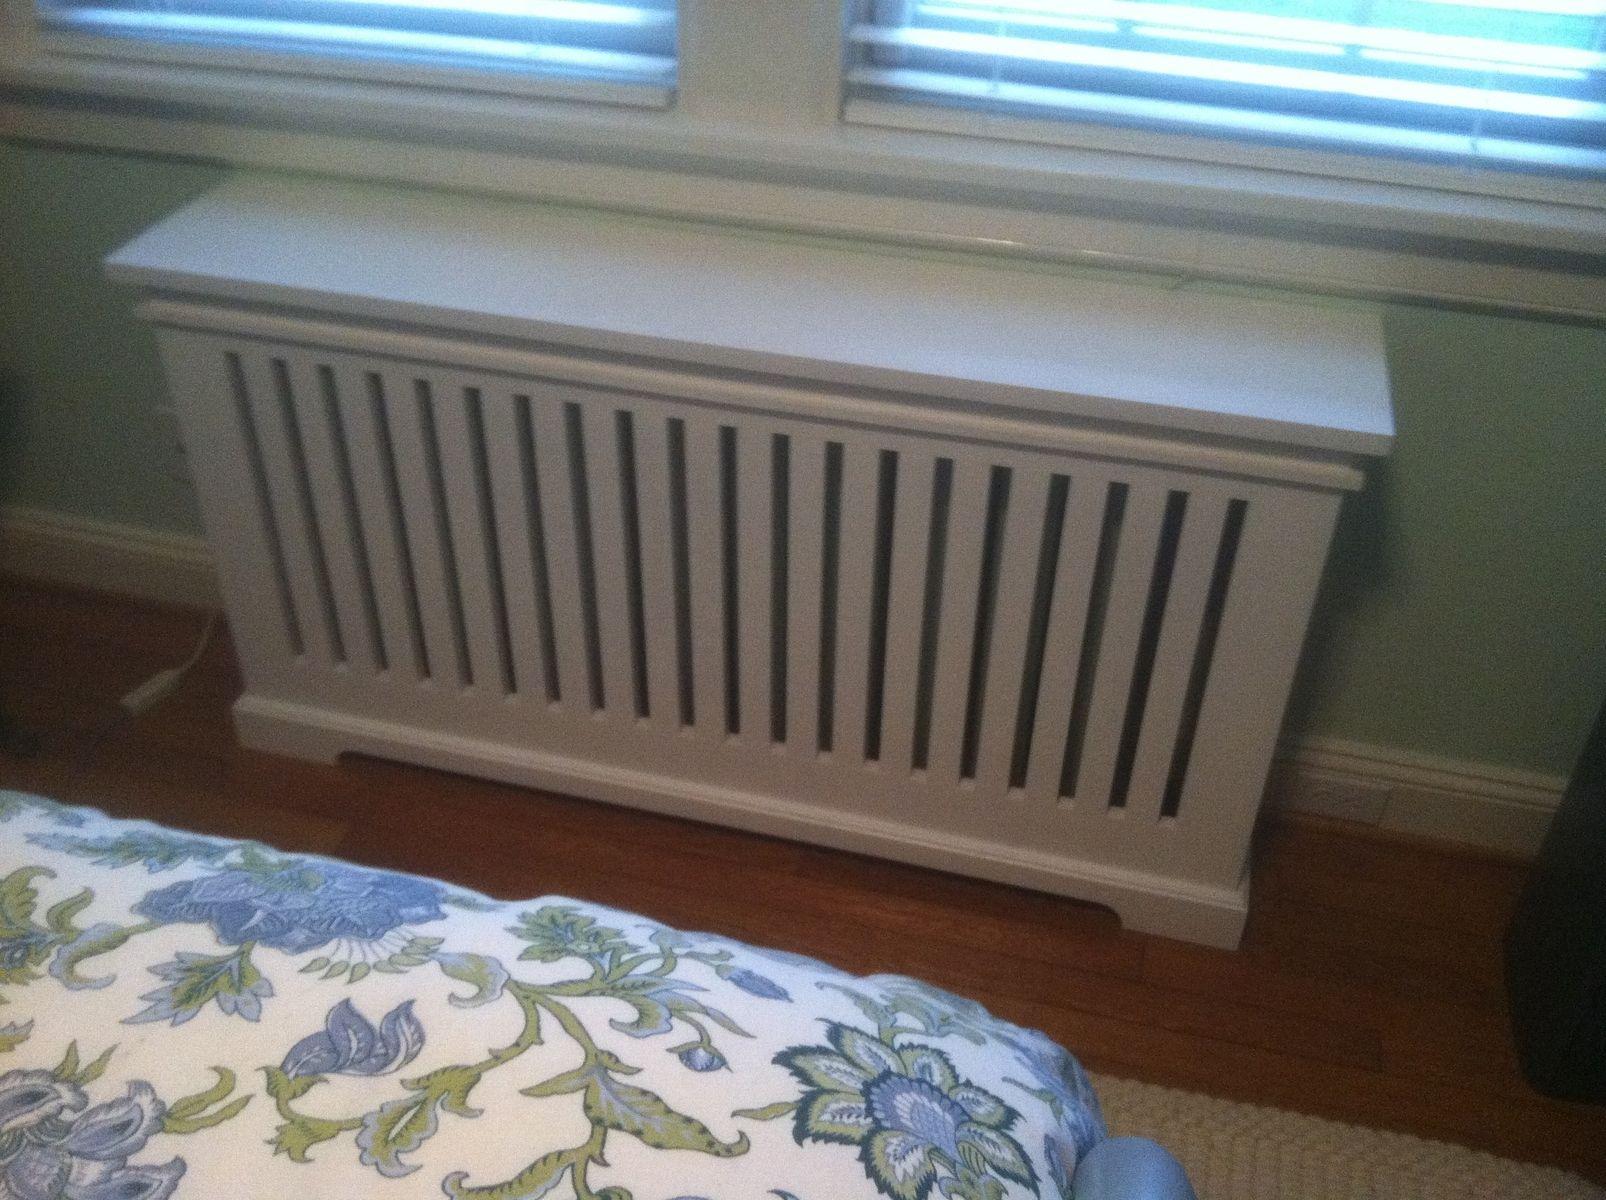 Hand Made Radiator Covers By Grant Kistler Designs